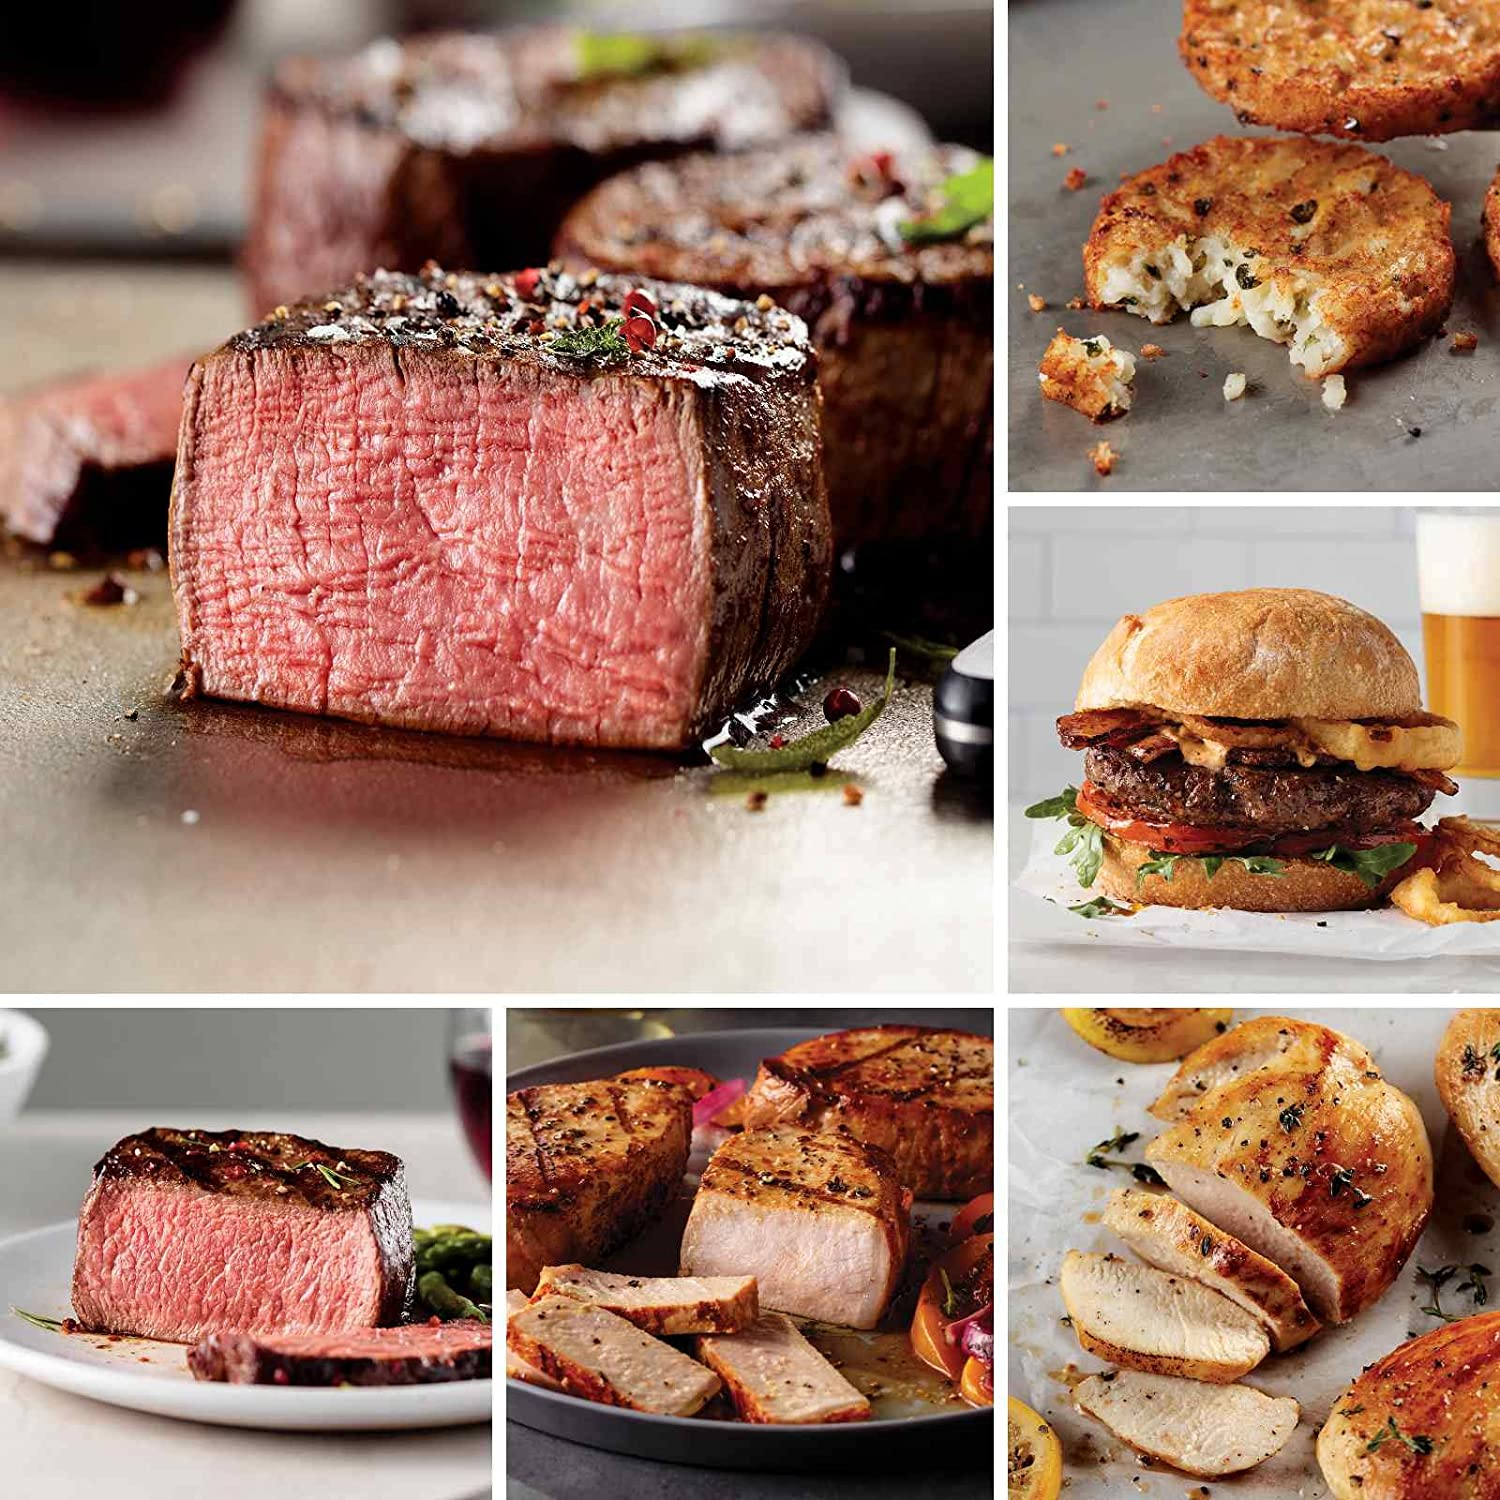 Omaha Steaks Treasures of the Grill Gift (24-Piece with Filet Mignons, Top Sirloins, Boneless Pork Chops, Chicken Breasts, Burgers, Steakhouse Hash Browns)